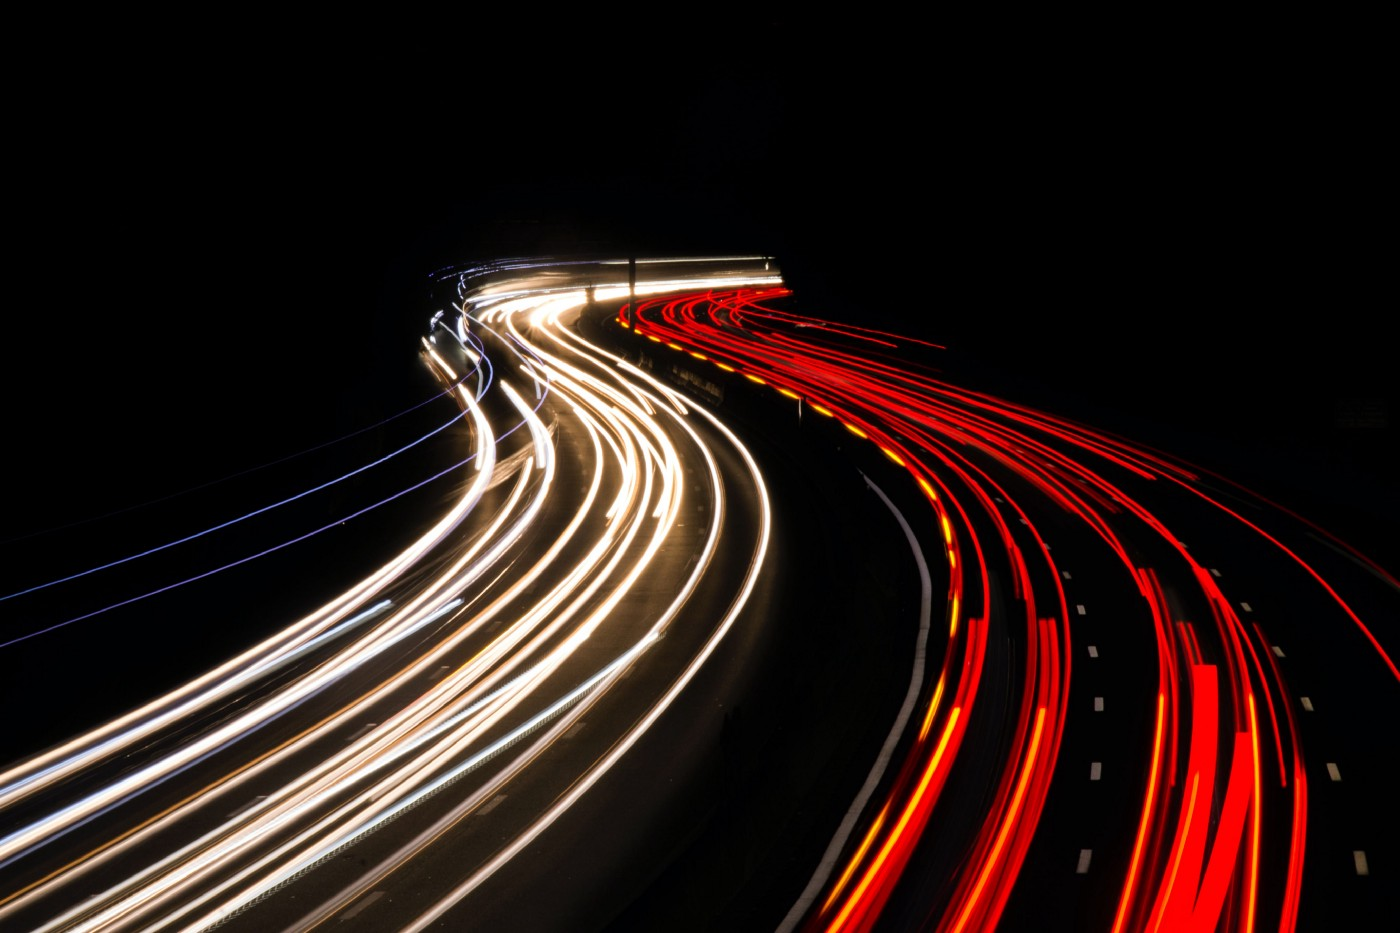 Headlights and taillights on a freeway, blurred into curving lines by long-exposure photography.